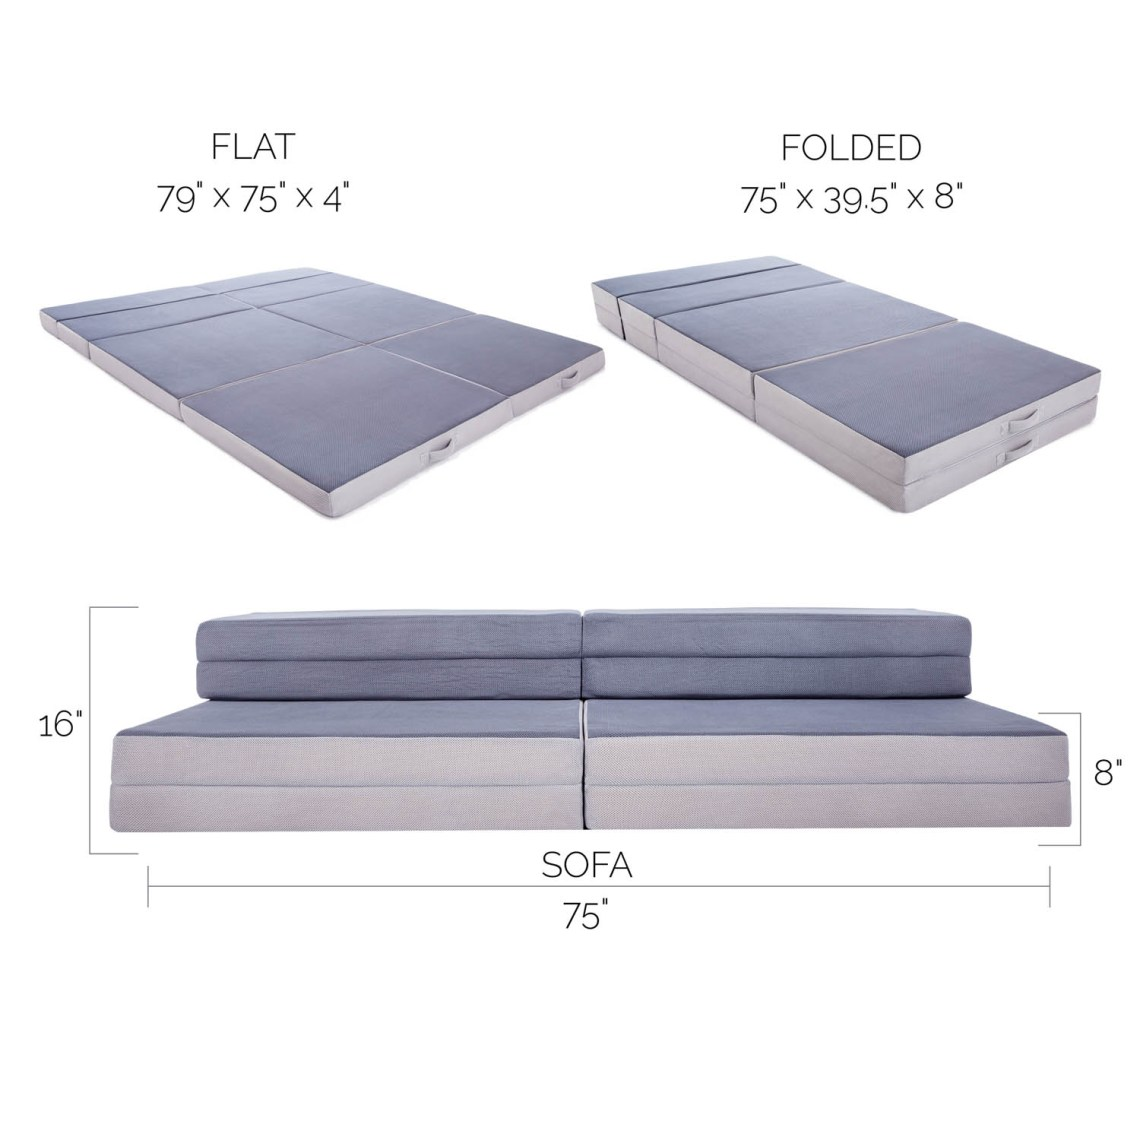 Image Result For Lucid King Twin Xl Convertible Folding Foam Mattress Sofa